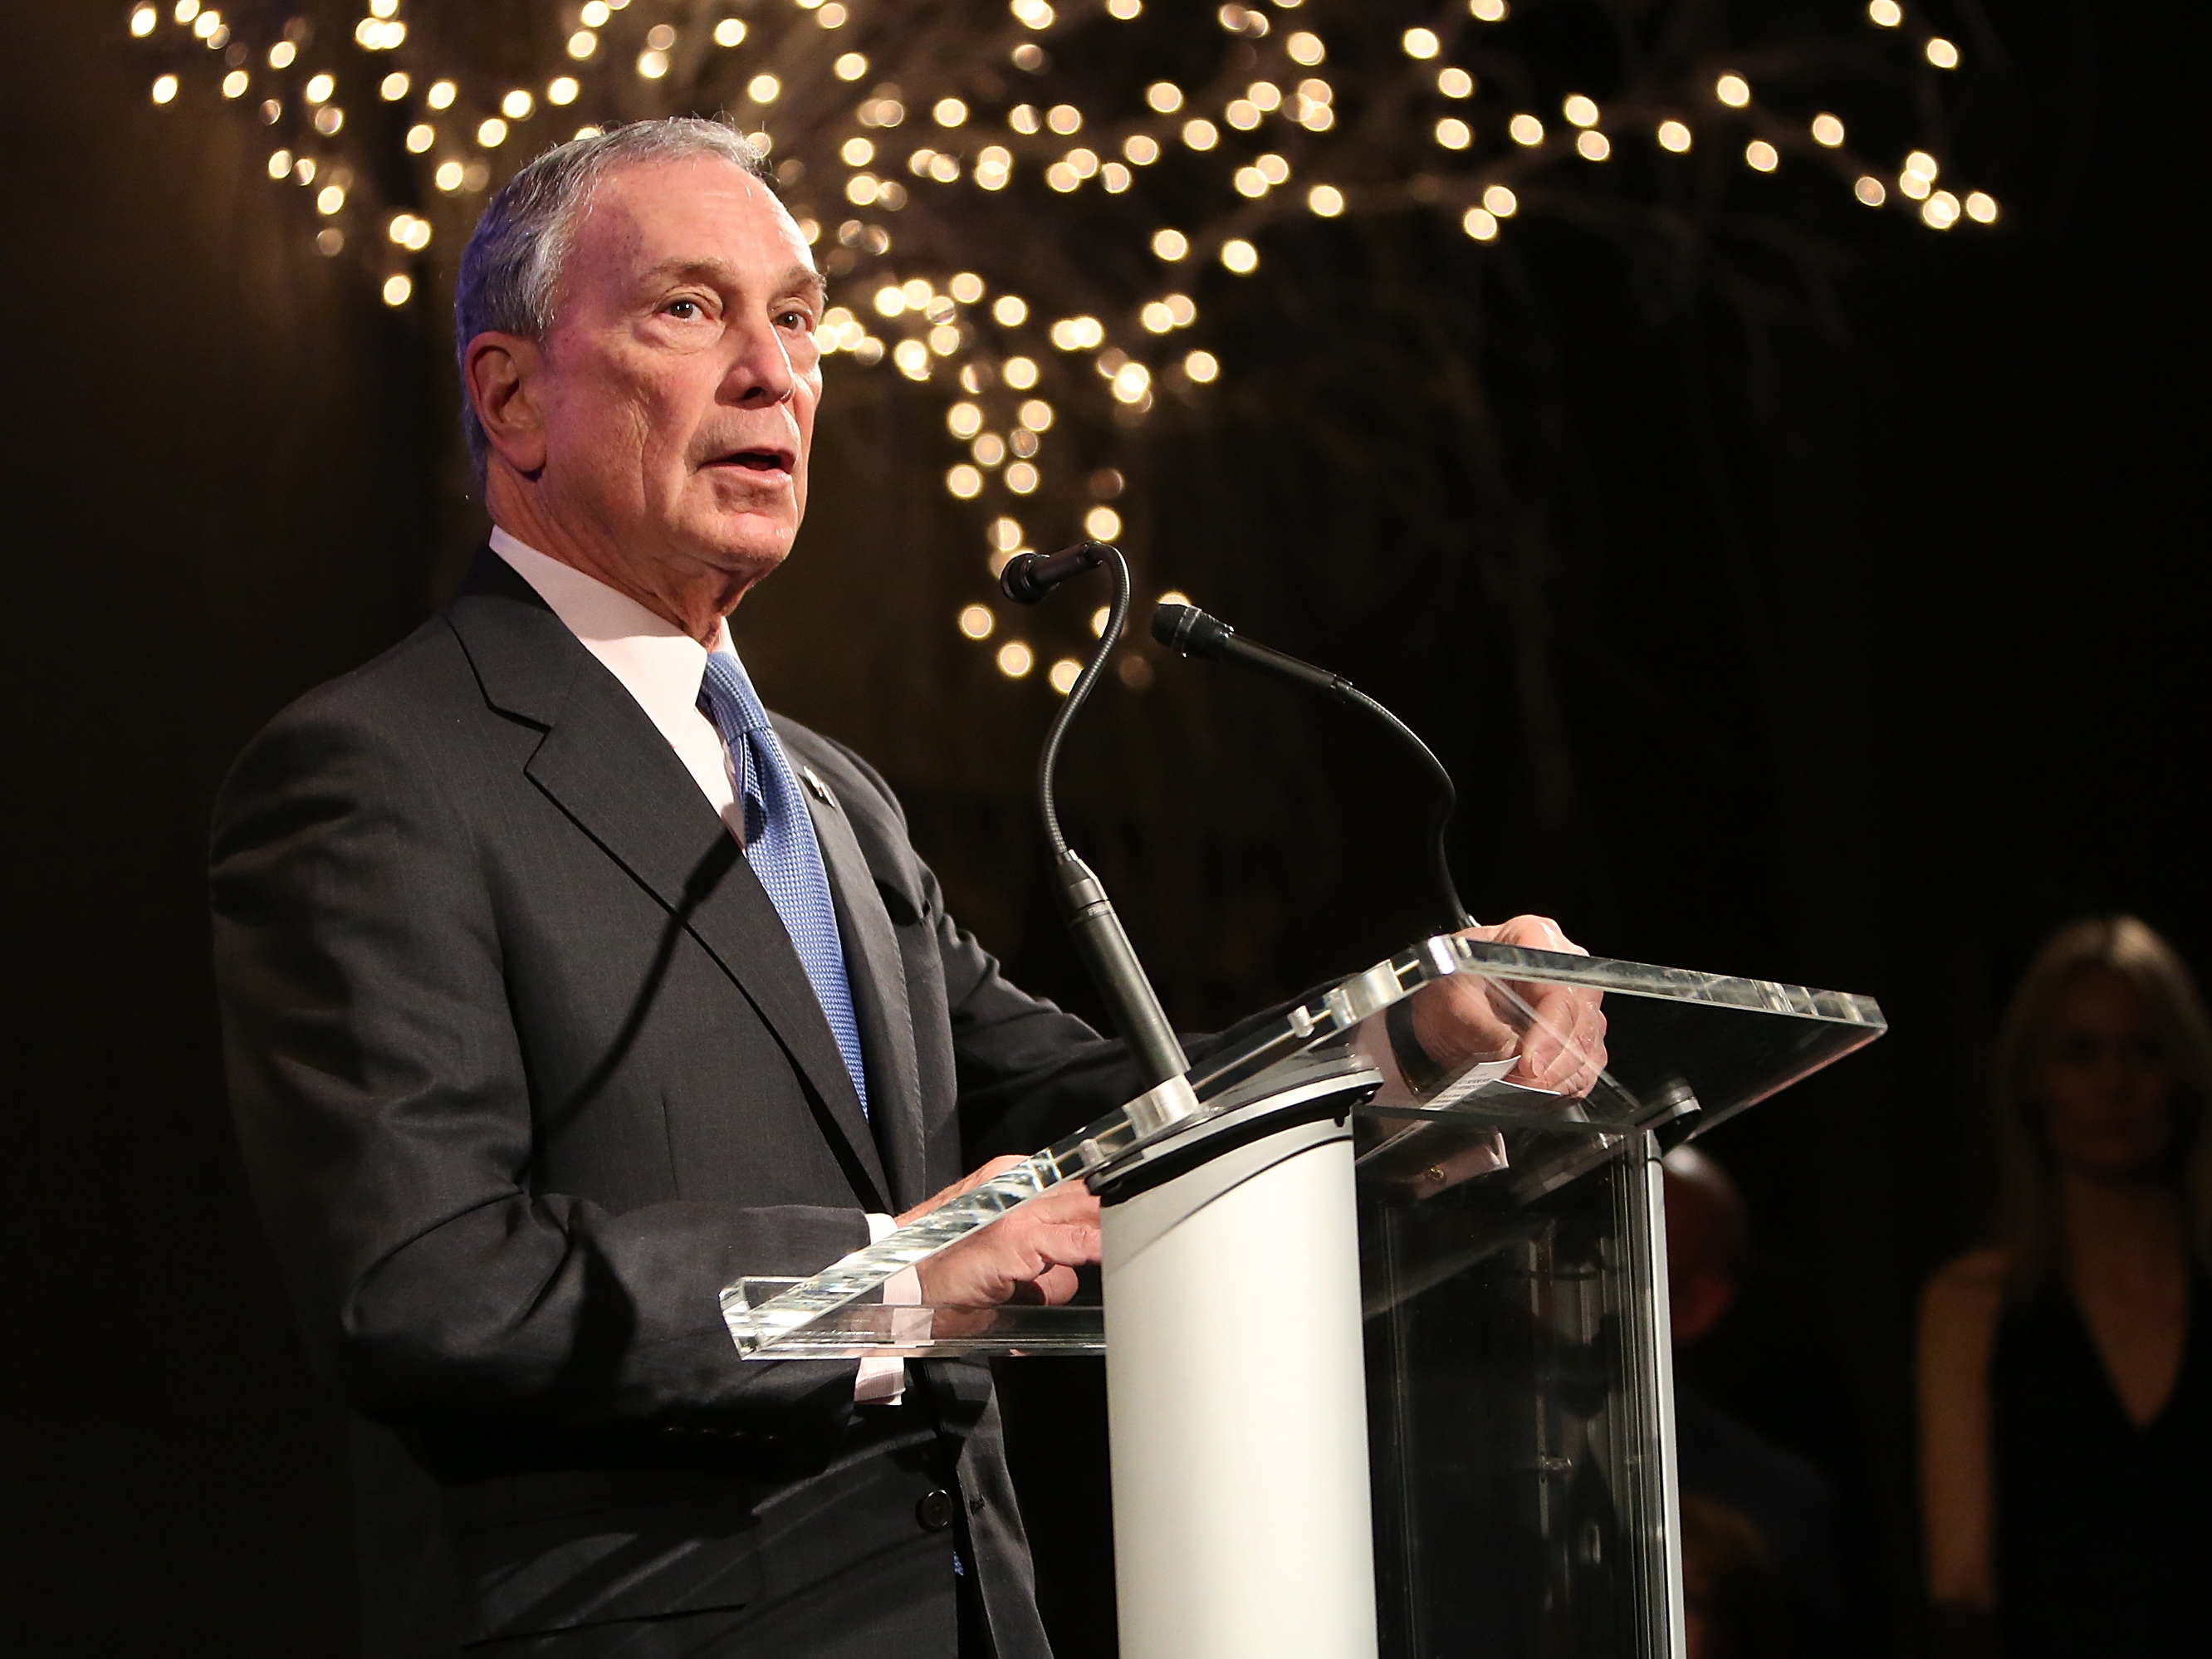 Michael Bloomberg Gives 18 Billion To Financial Aid At